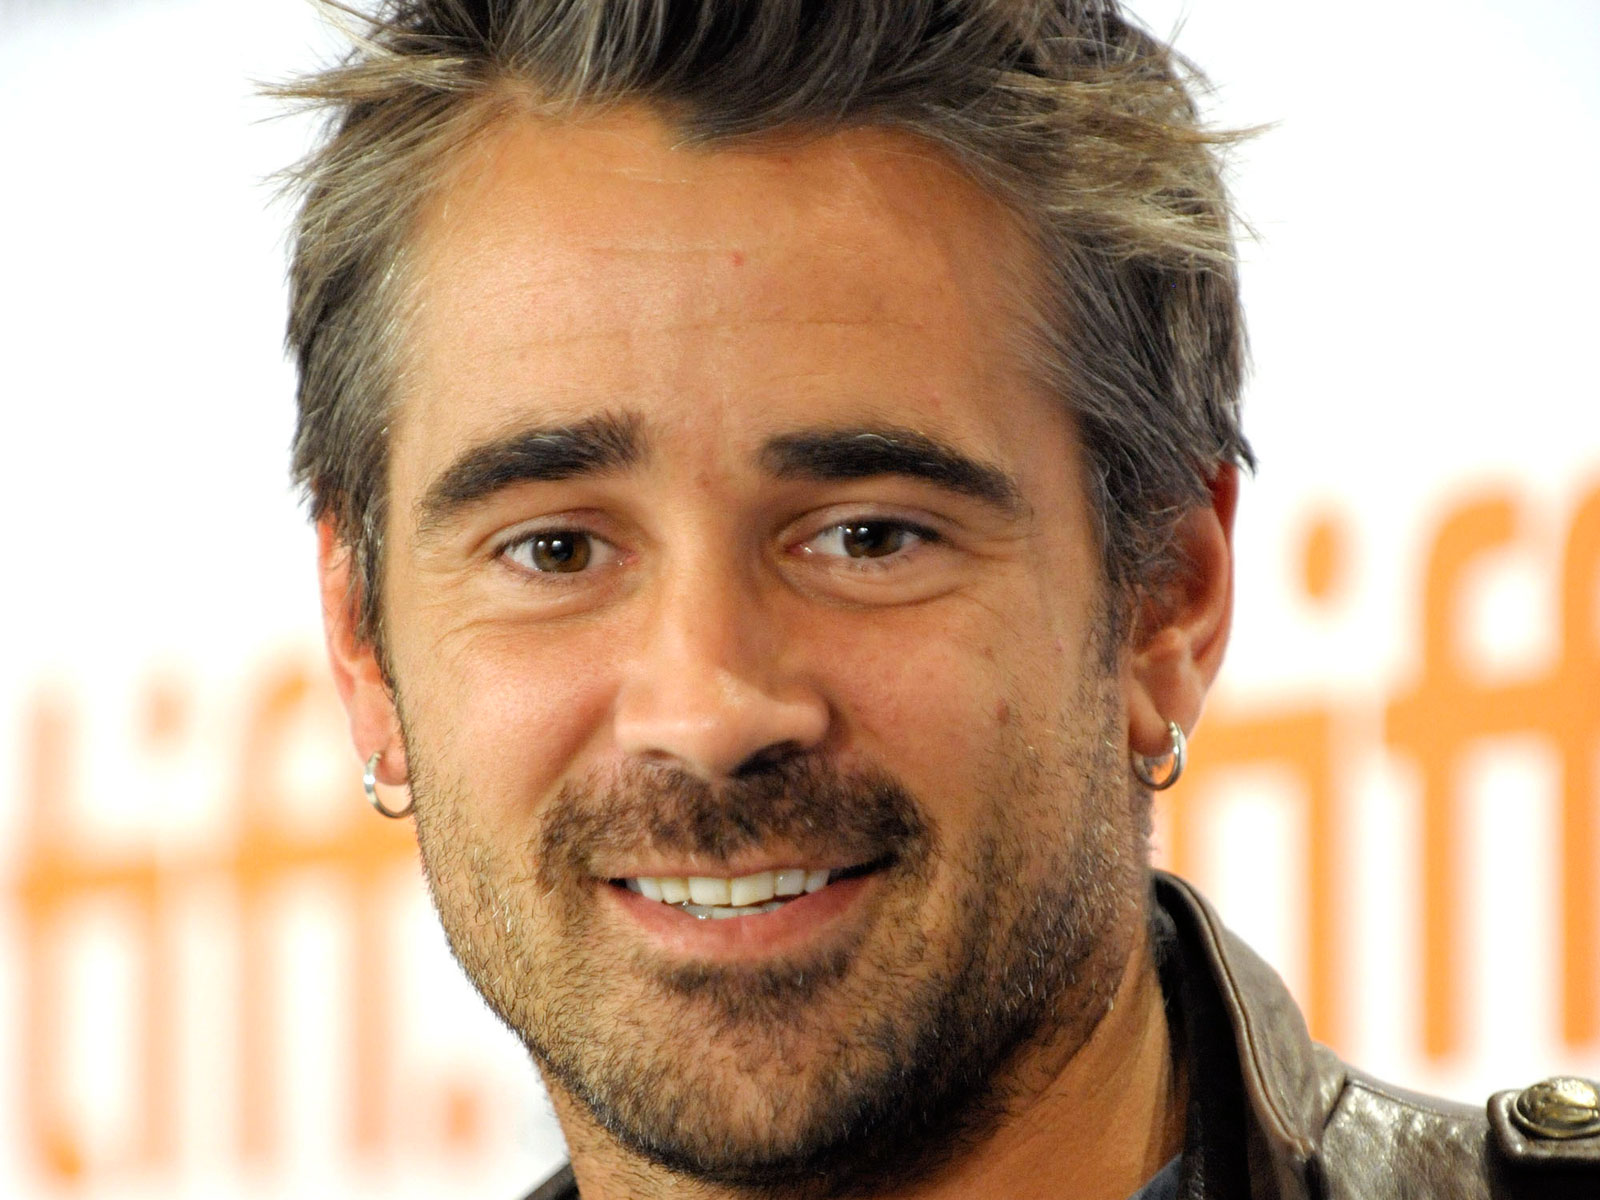 Colin Farrell Photos Colin Farrell 1600x1200